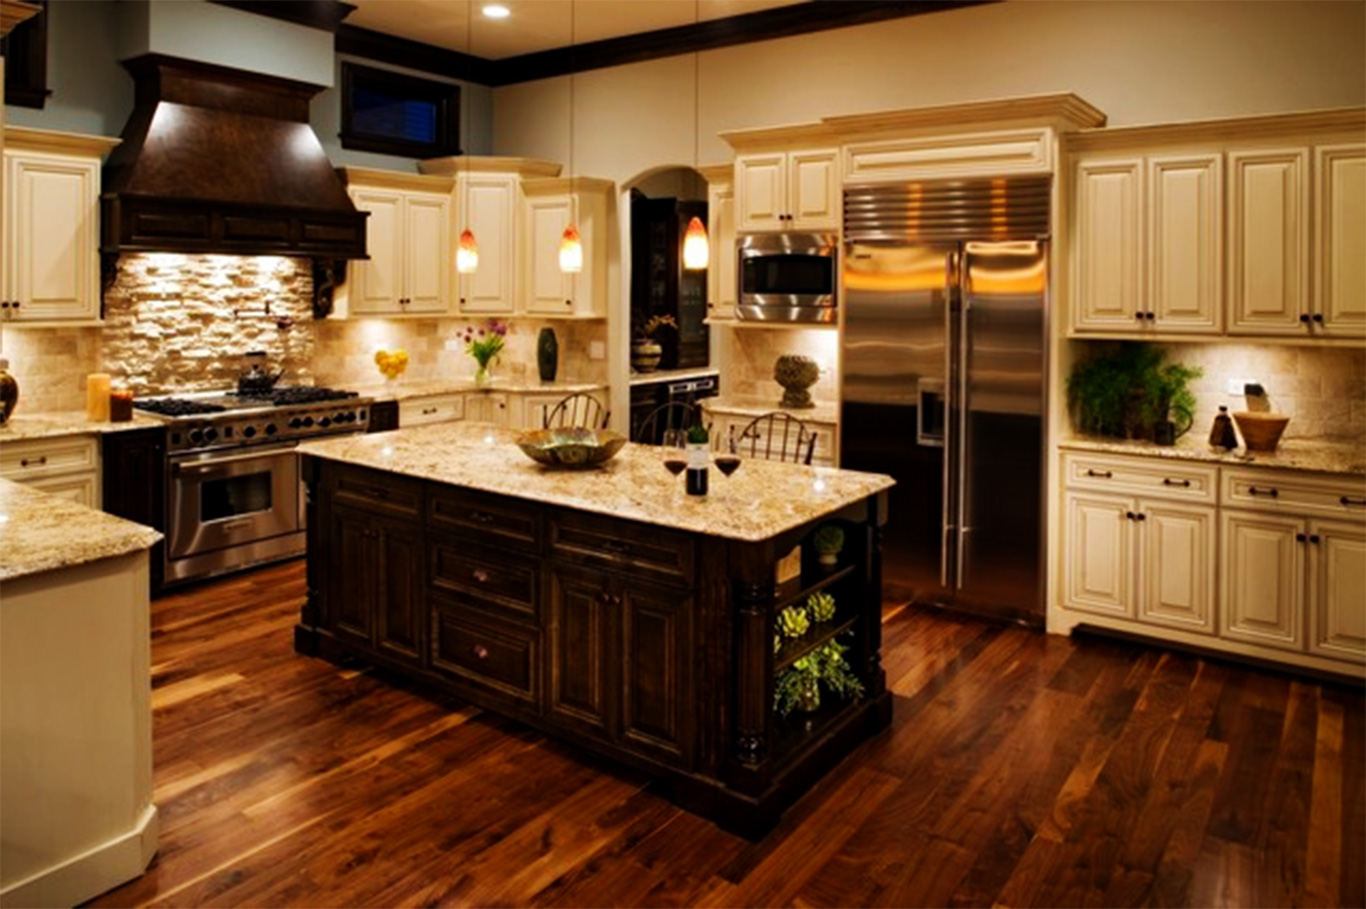 11 awesome type of kitchen design ideas - Kitchen style ...